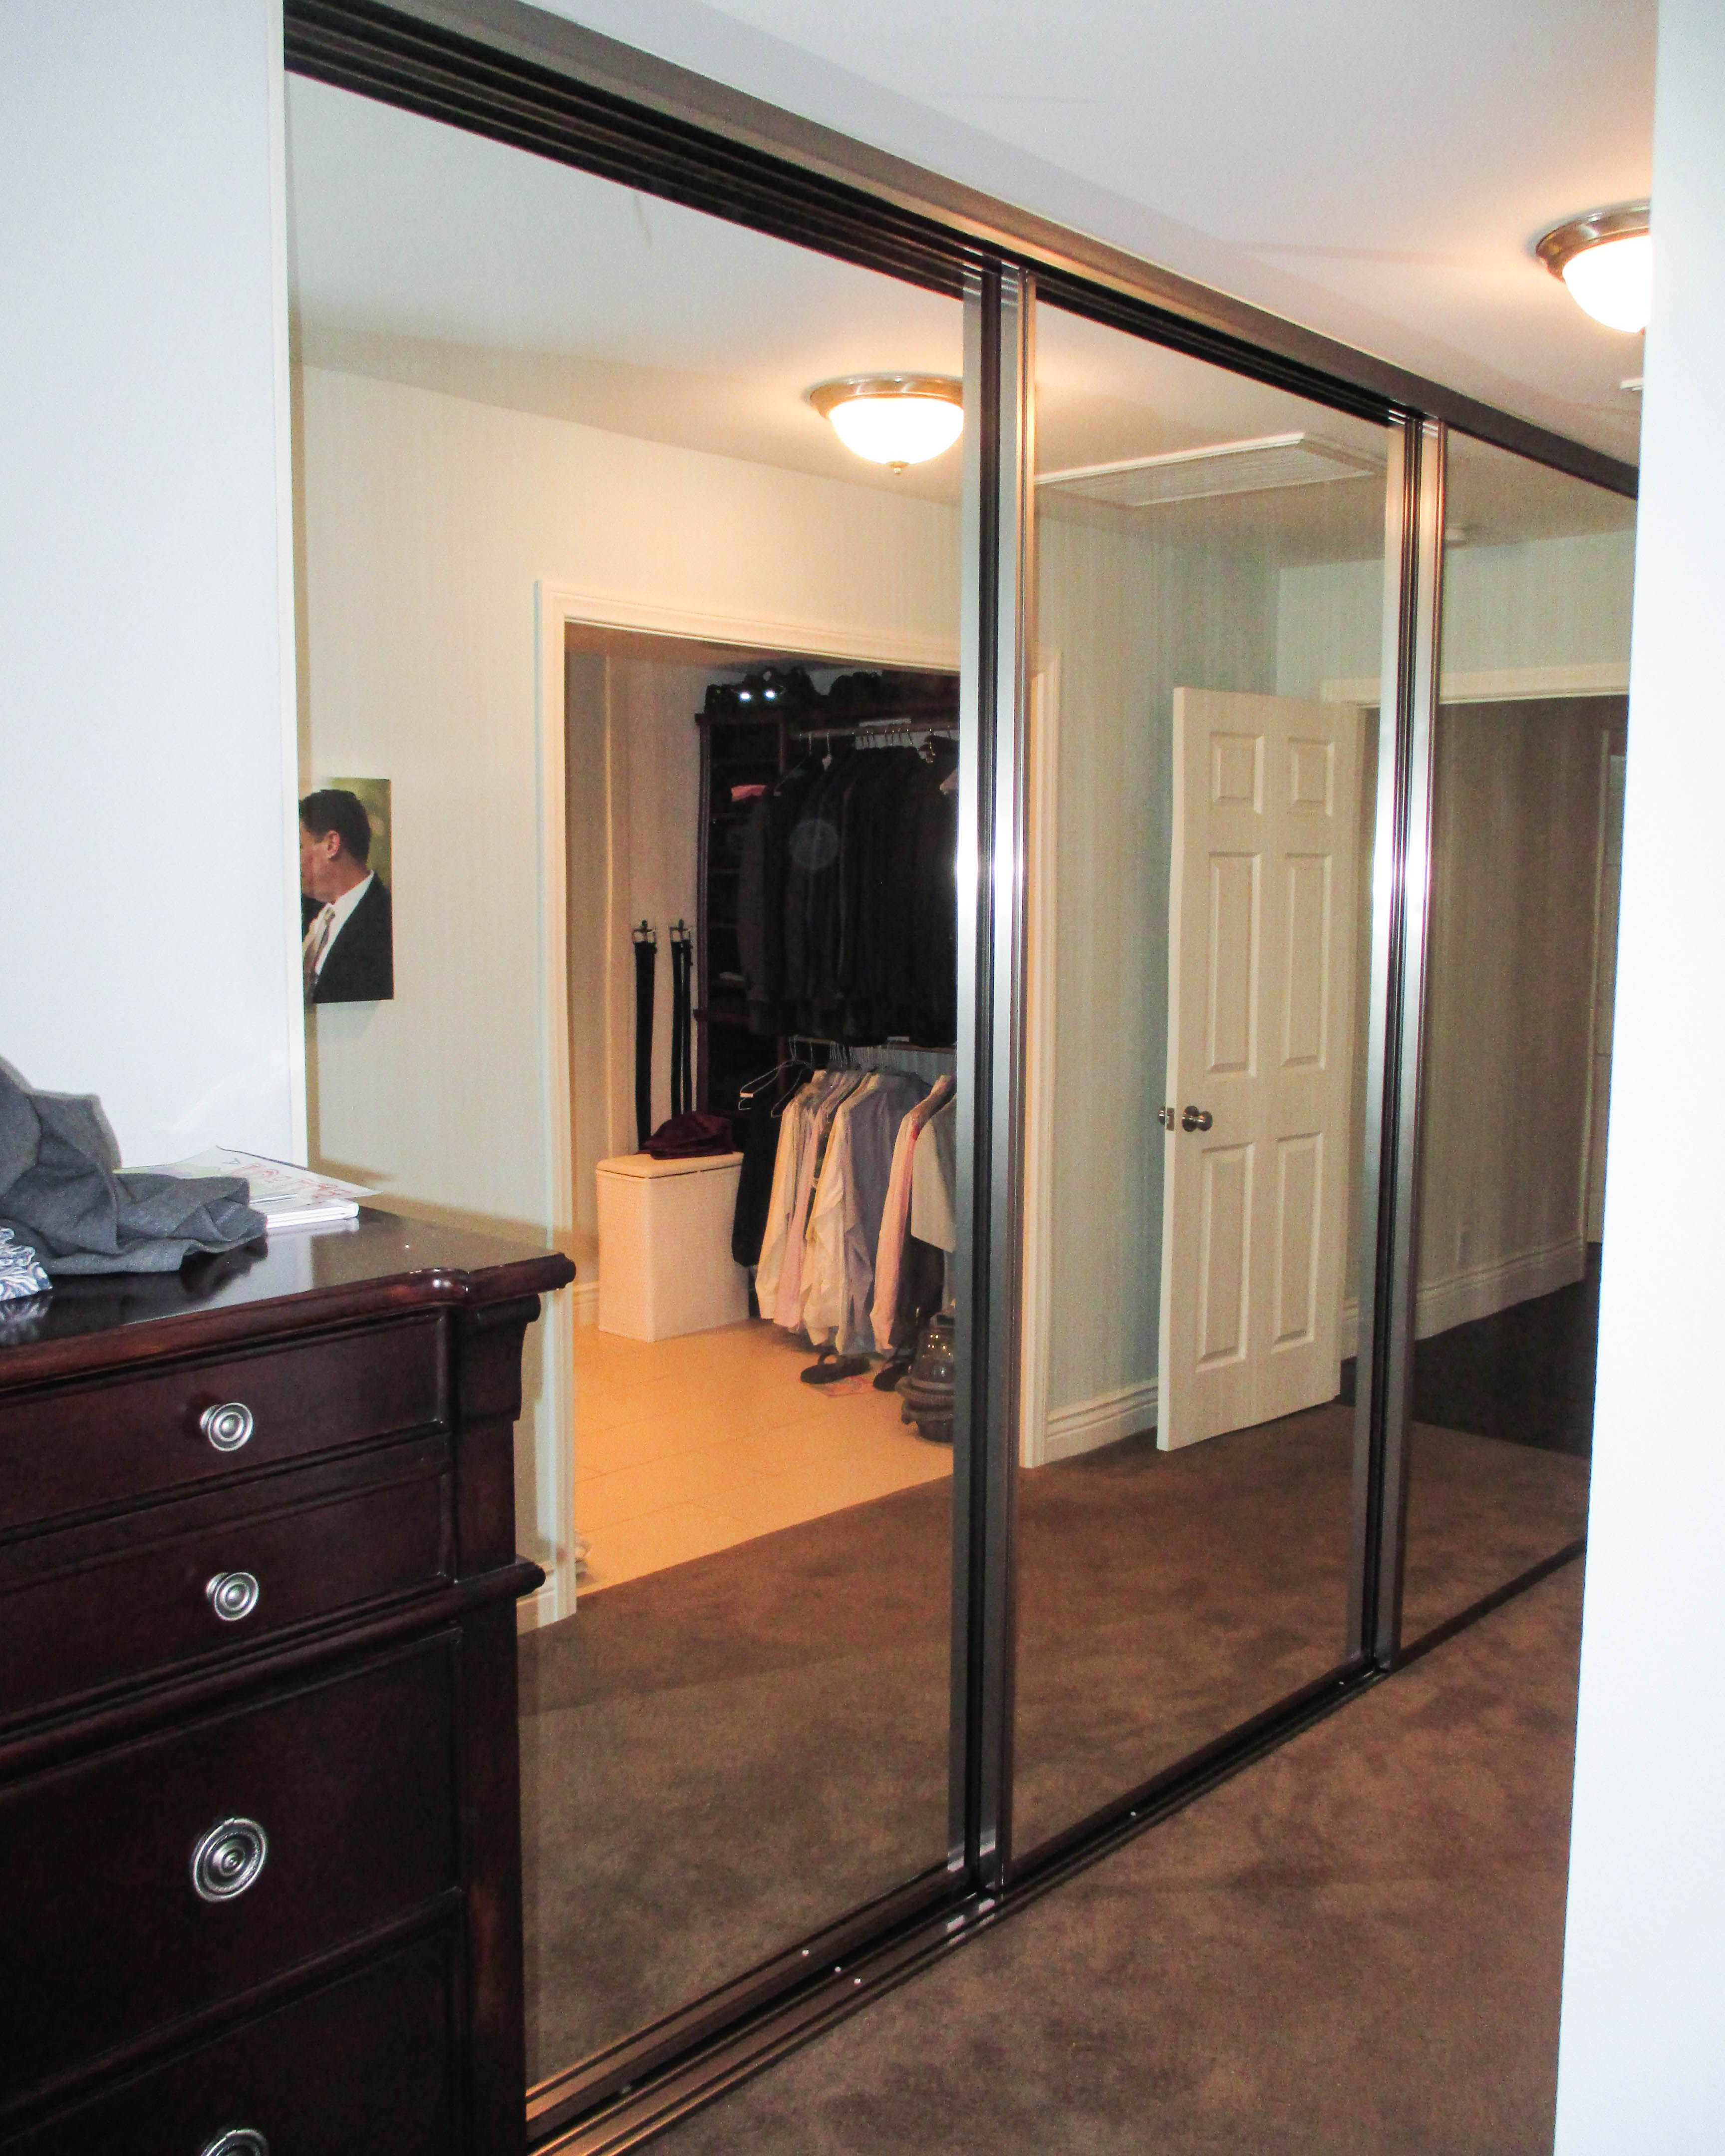 Check Out This 3 Panel 3 Track Concord Bypass Closet Doors With Brushed Nickel Frames And Sliding Closet Doors Sliding Mirror Closet Doors Mirror Closet Doors